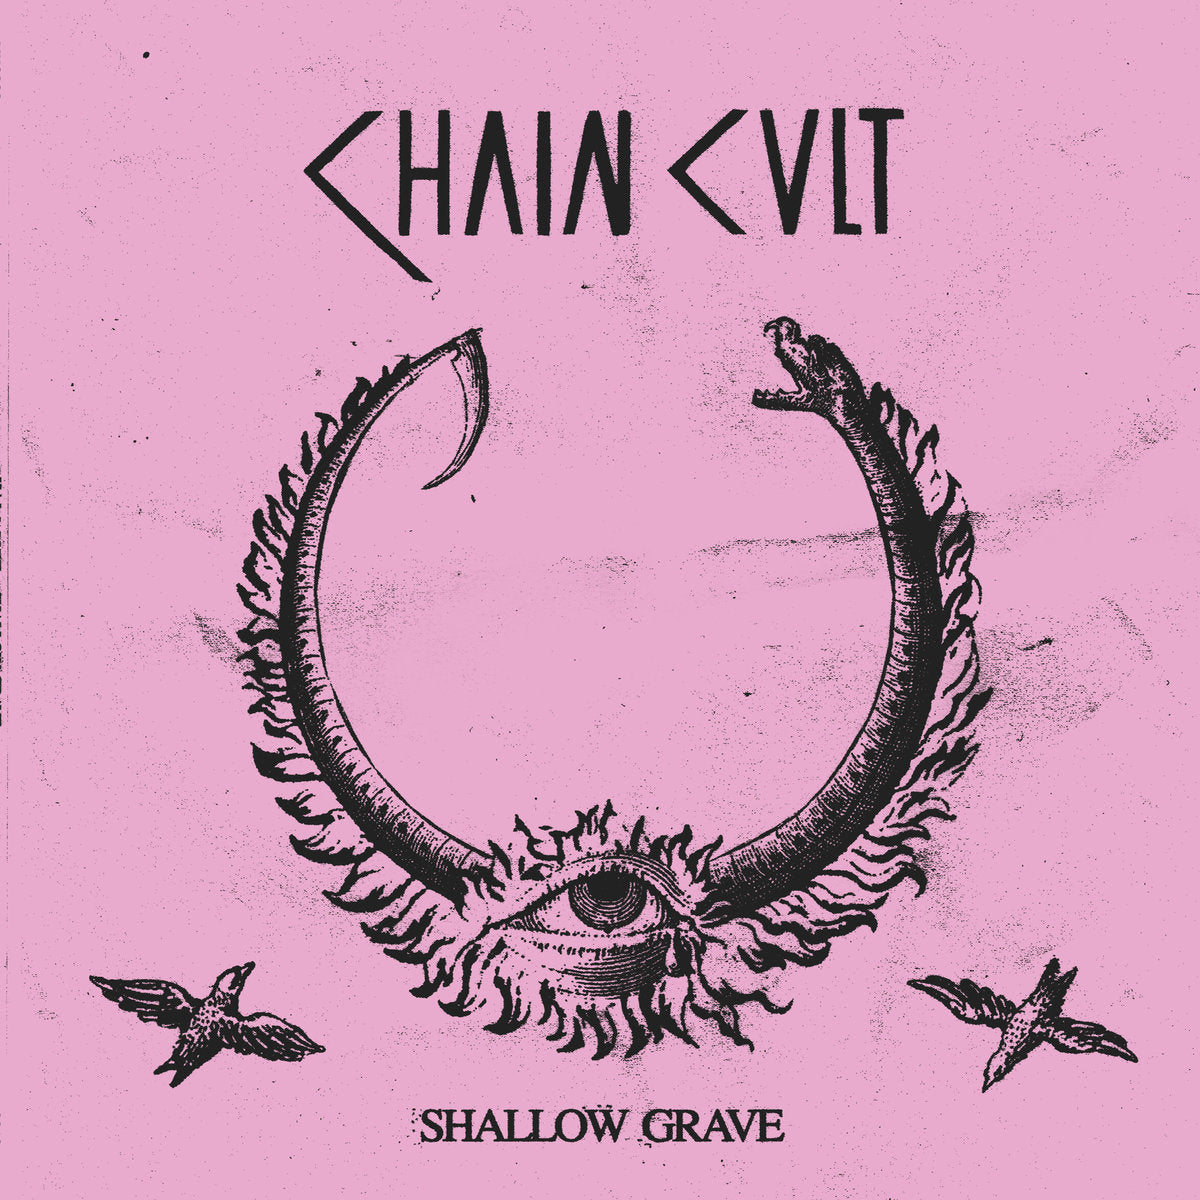 Chain Cult - Shallow Grave LP - Vinyl